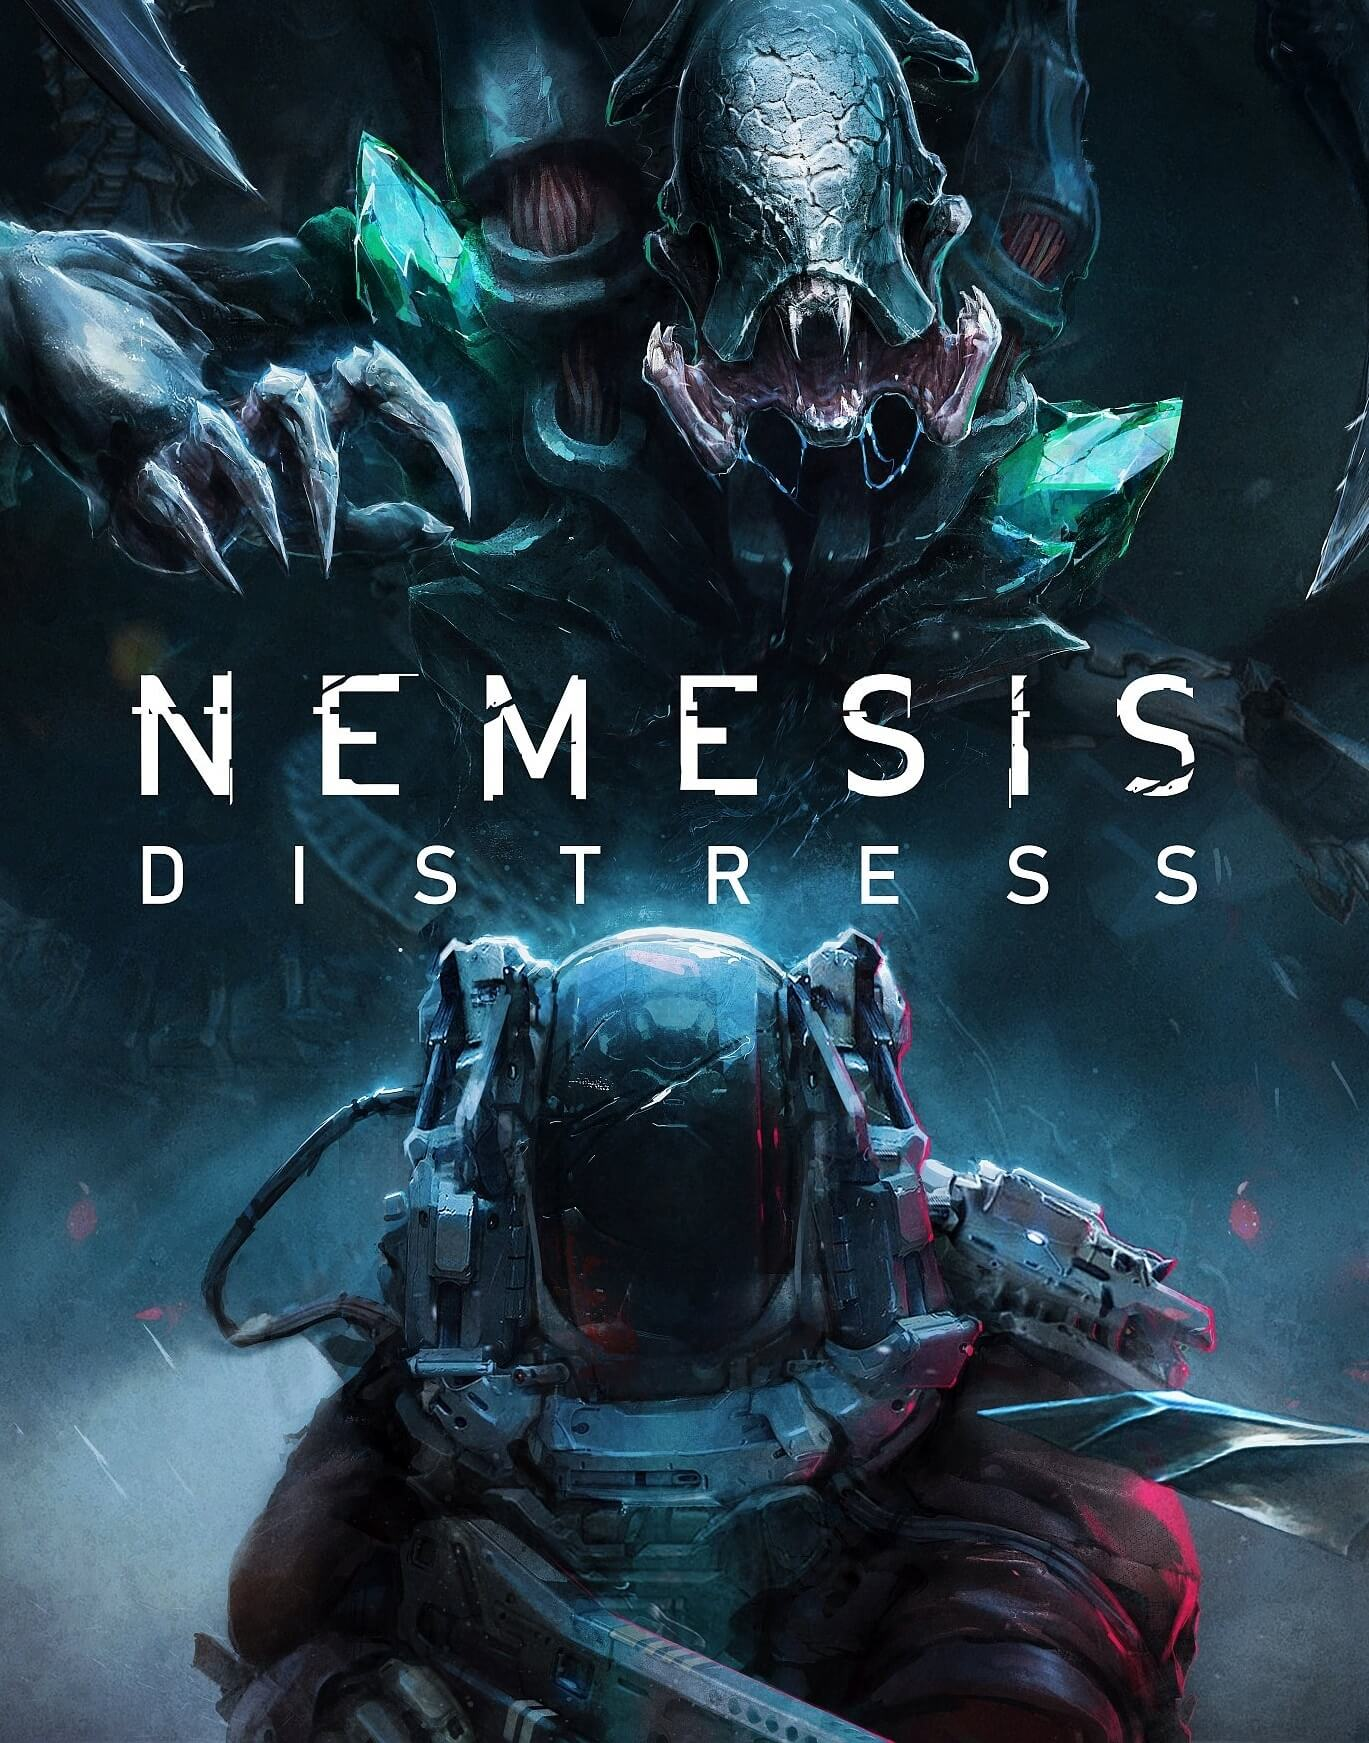 Nemesis Distress